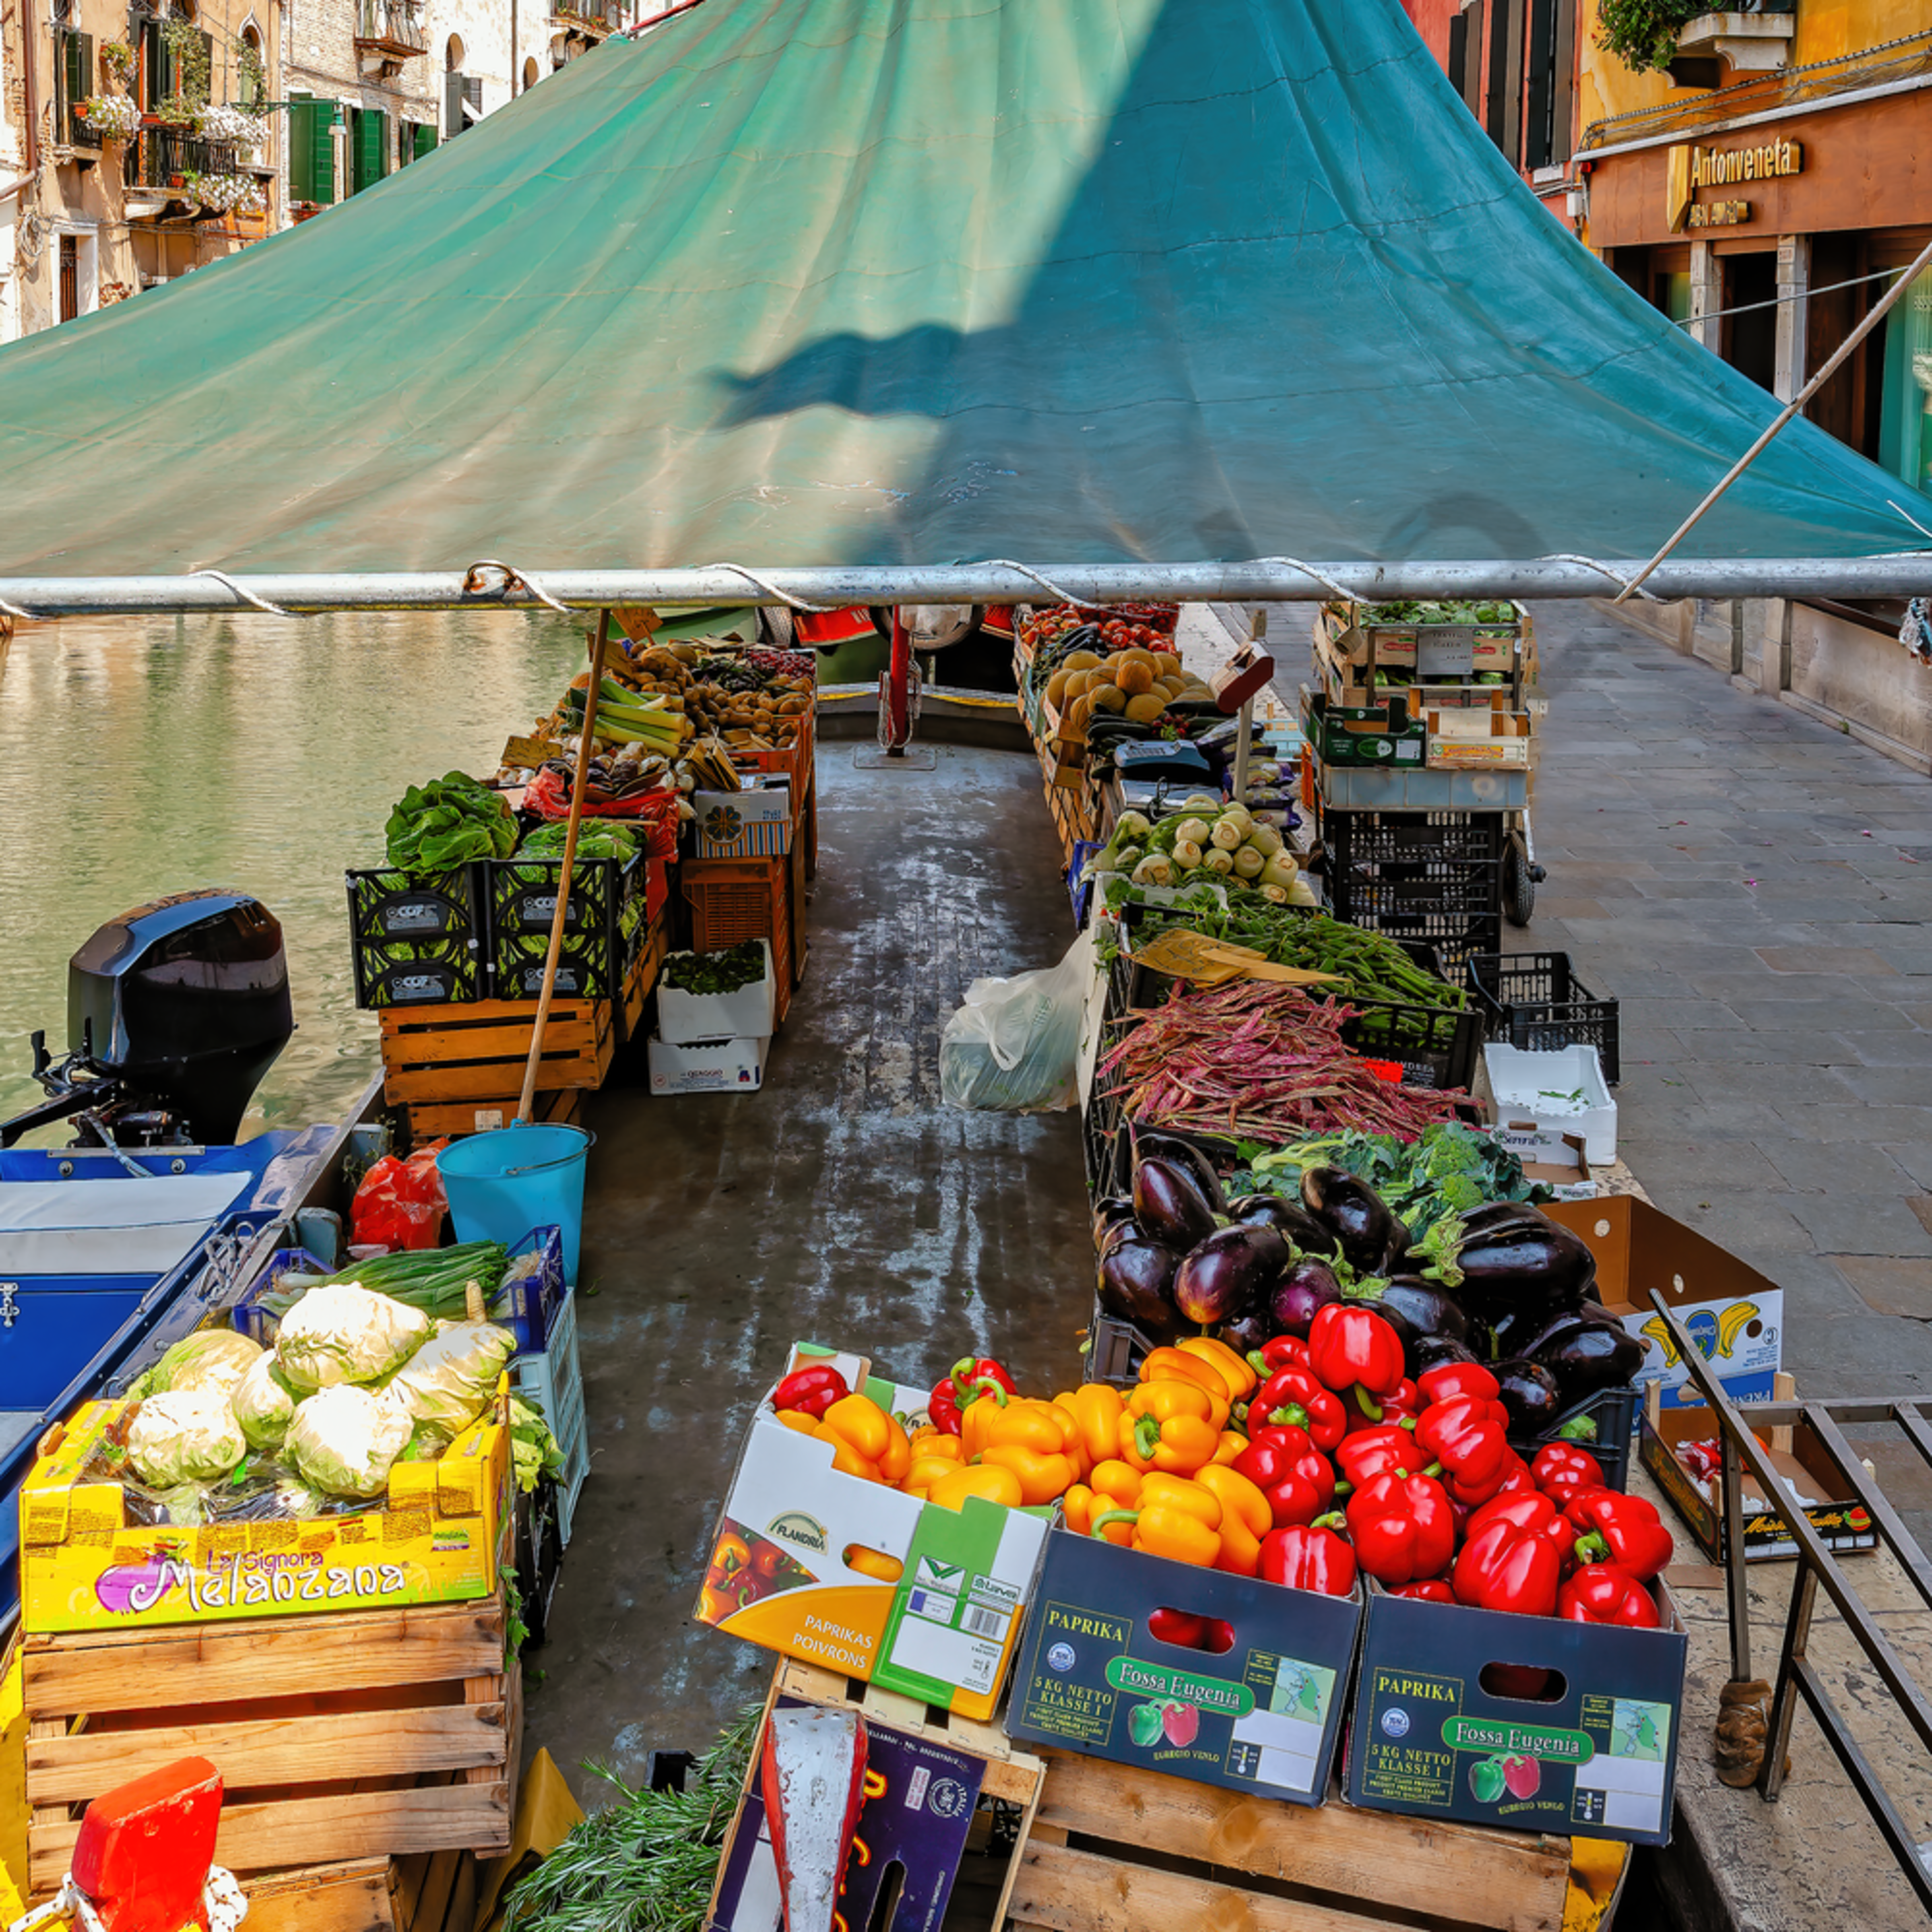 Fruits and vegetables on boat on canal in venice italy zyh0gx